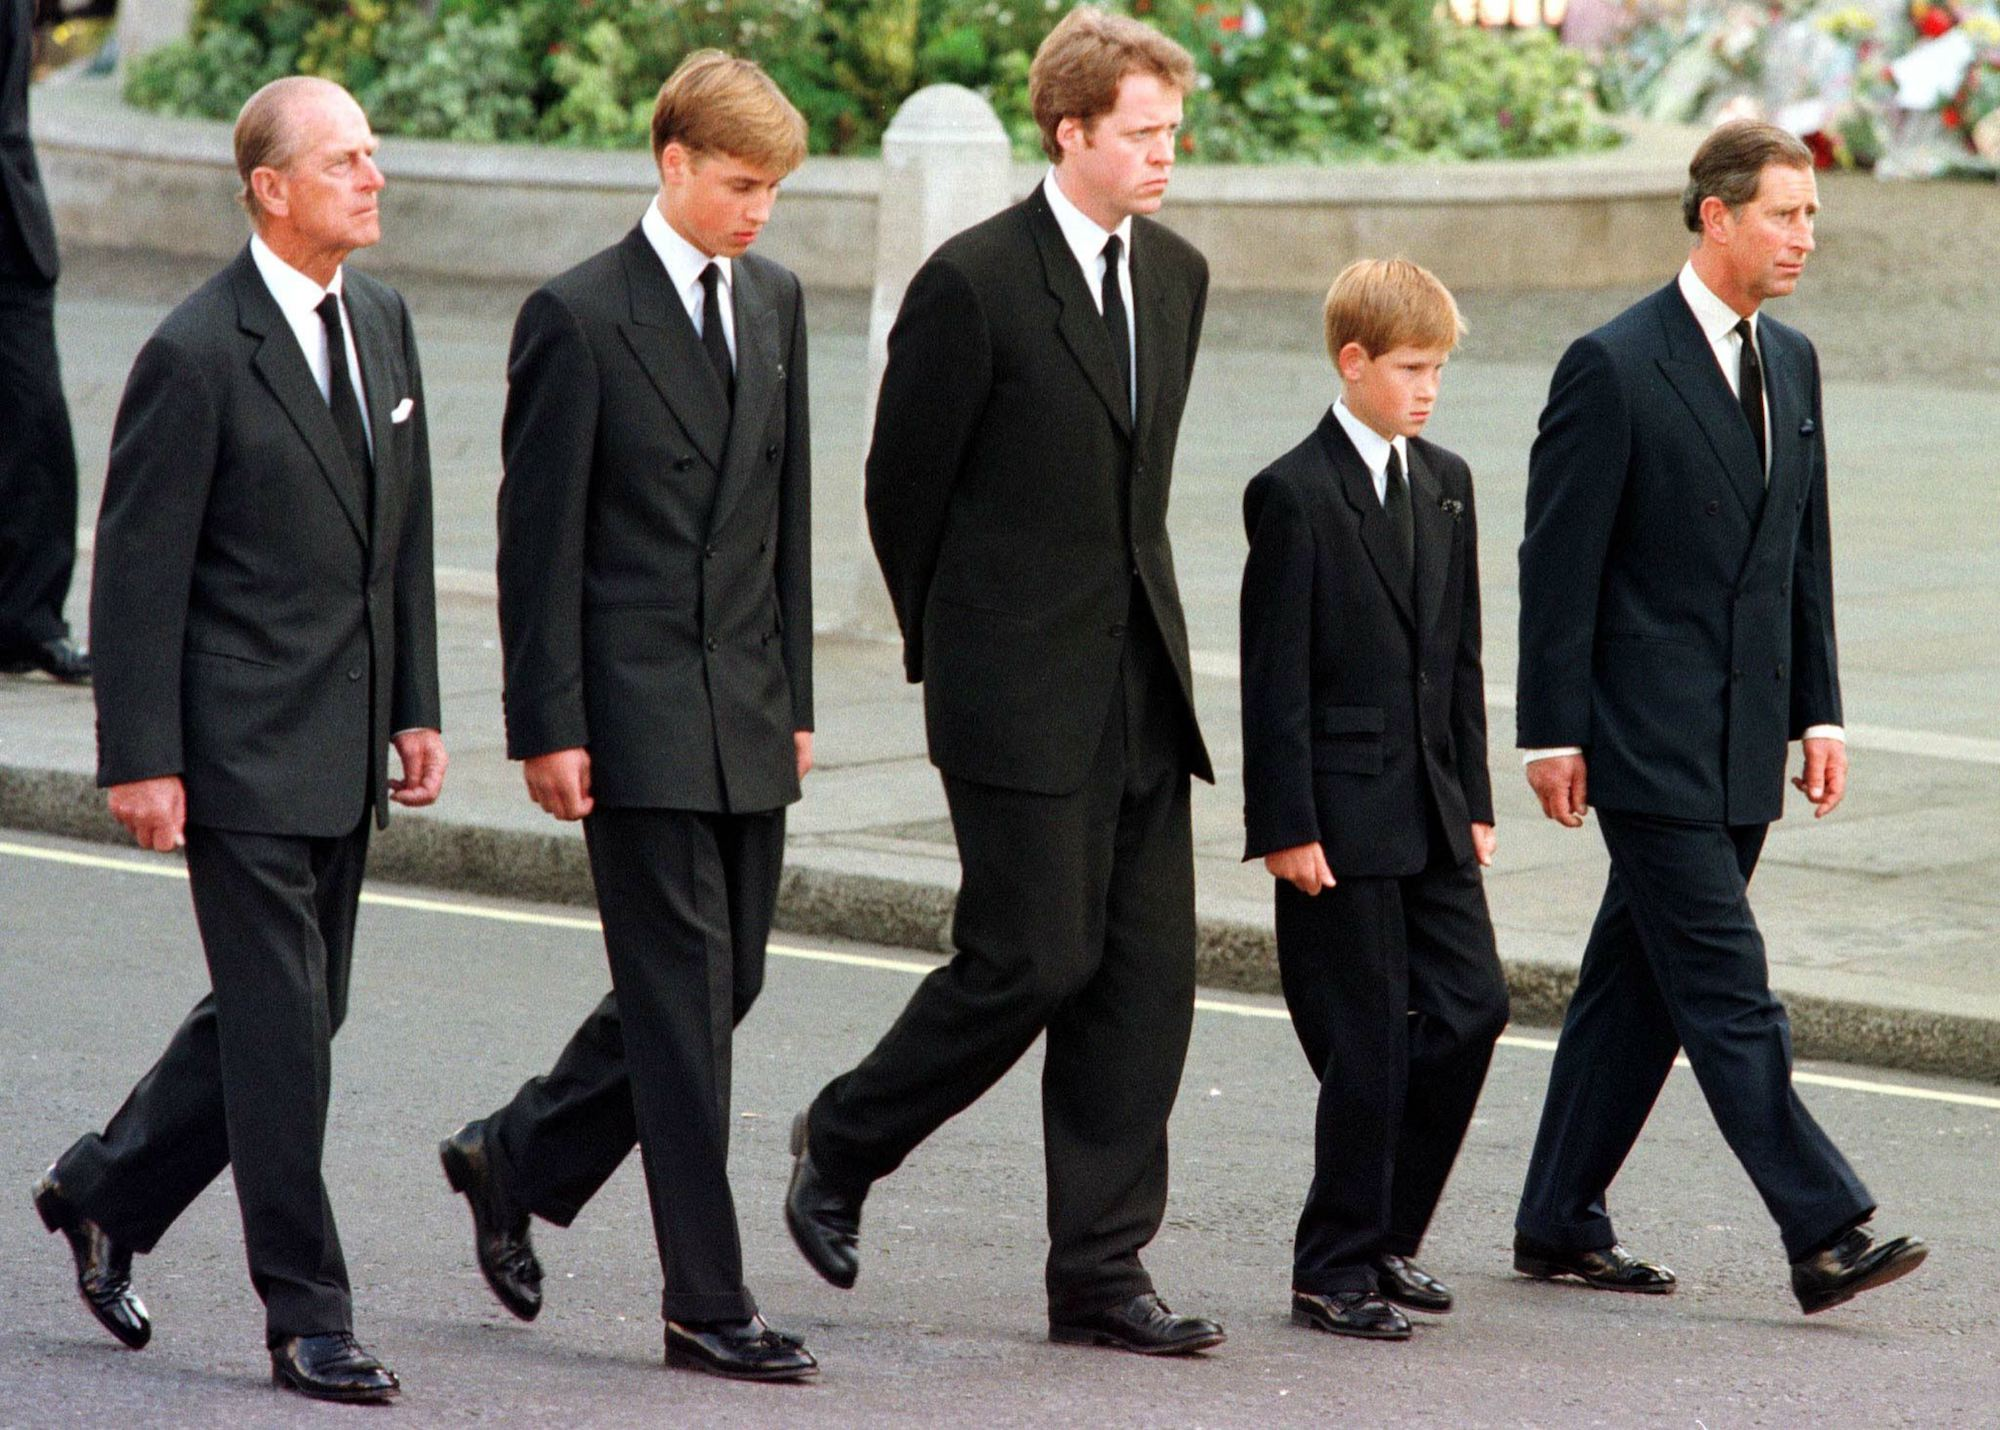 Harry, William, and Charles embed